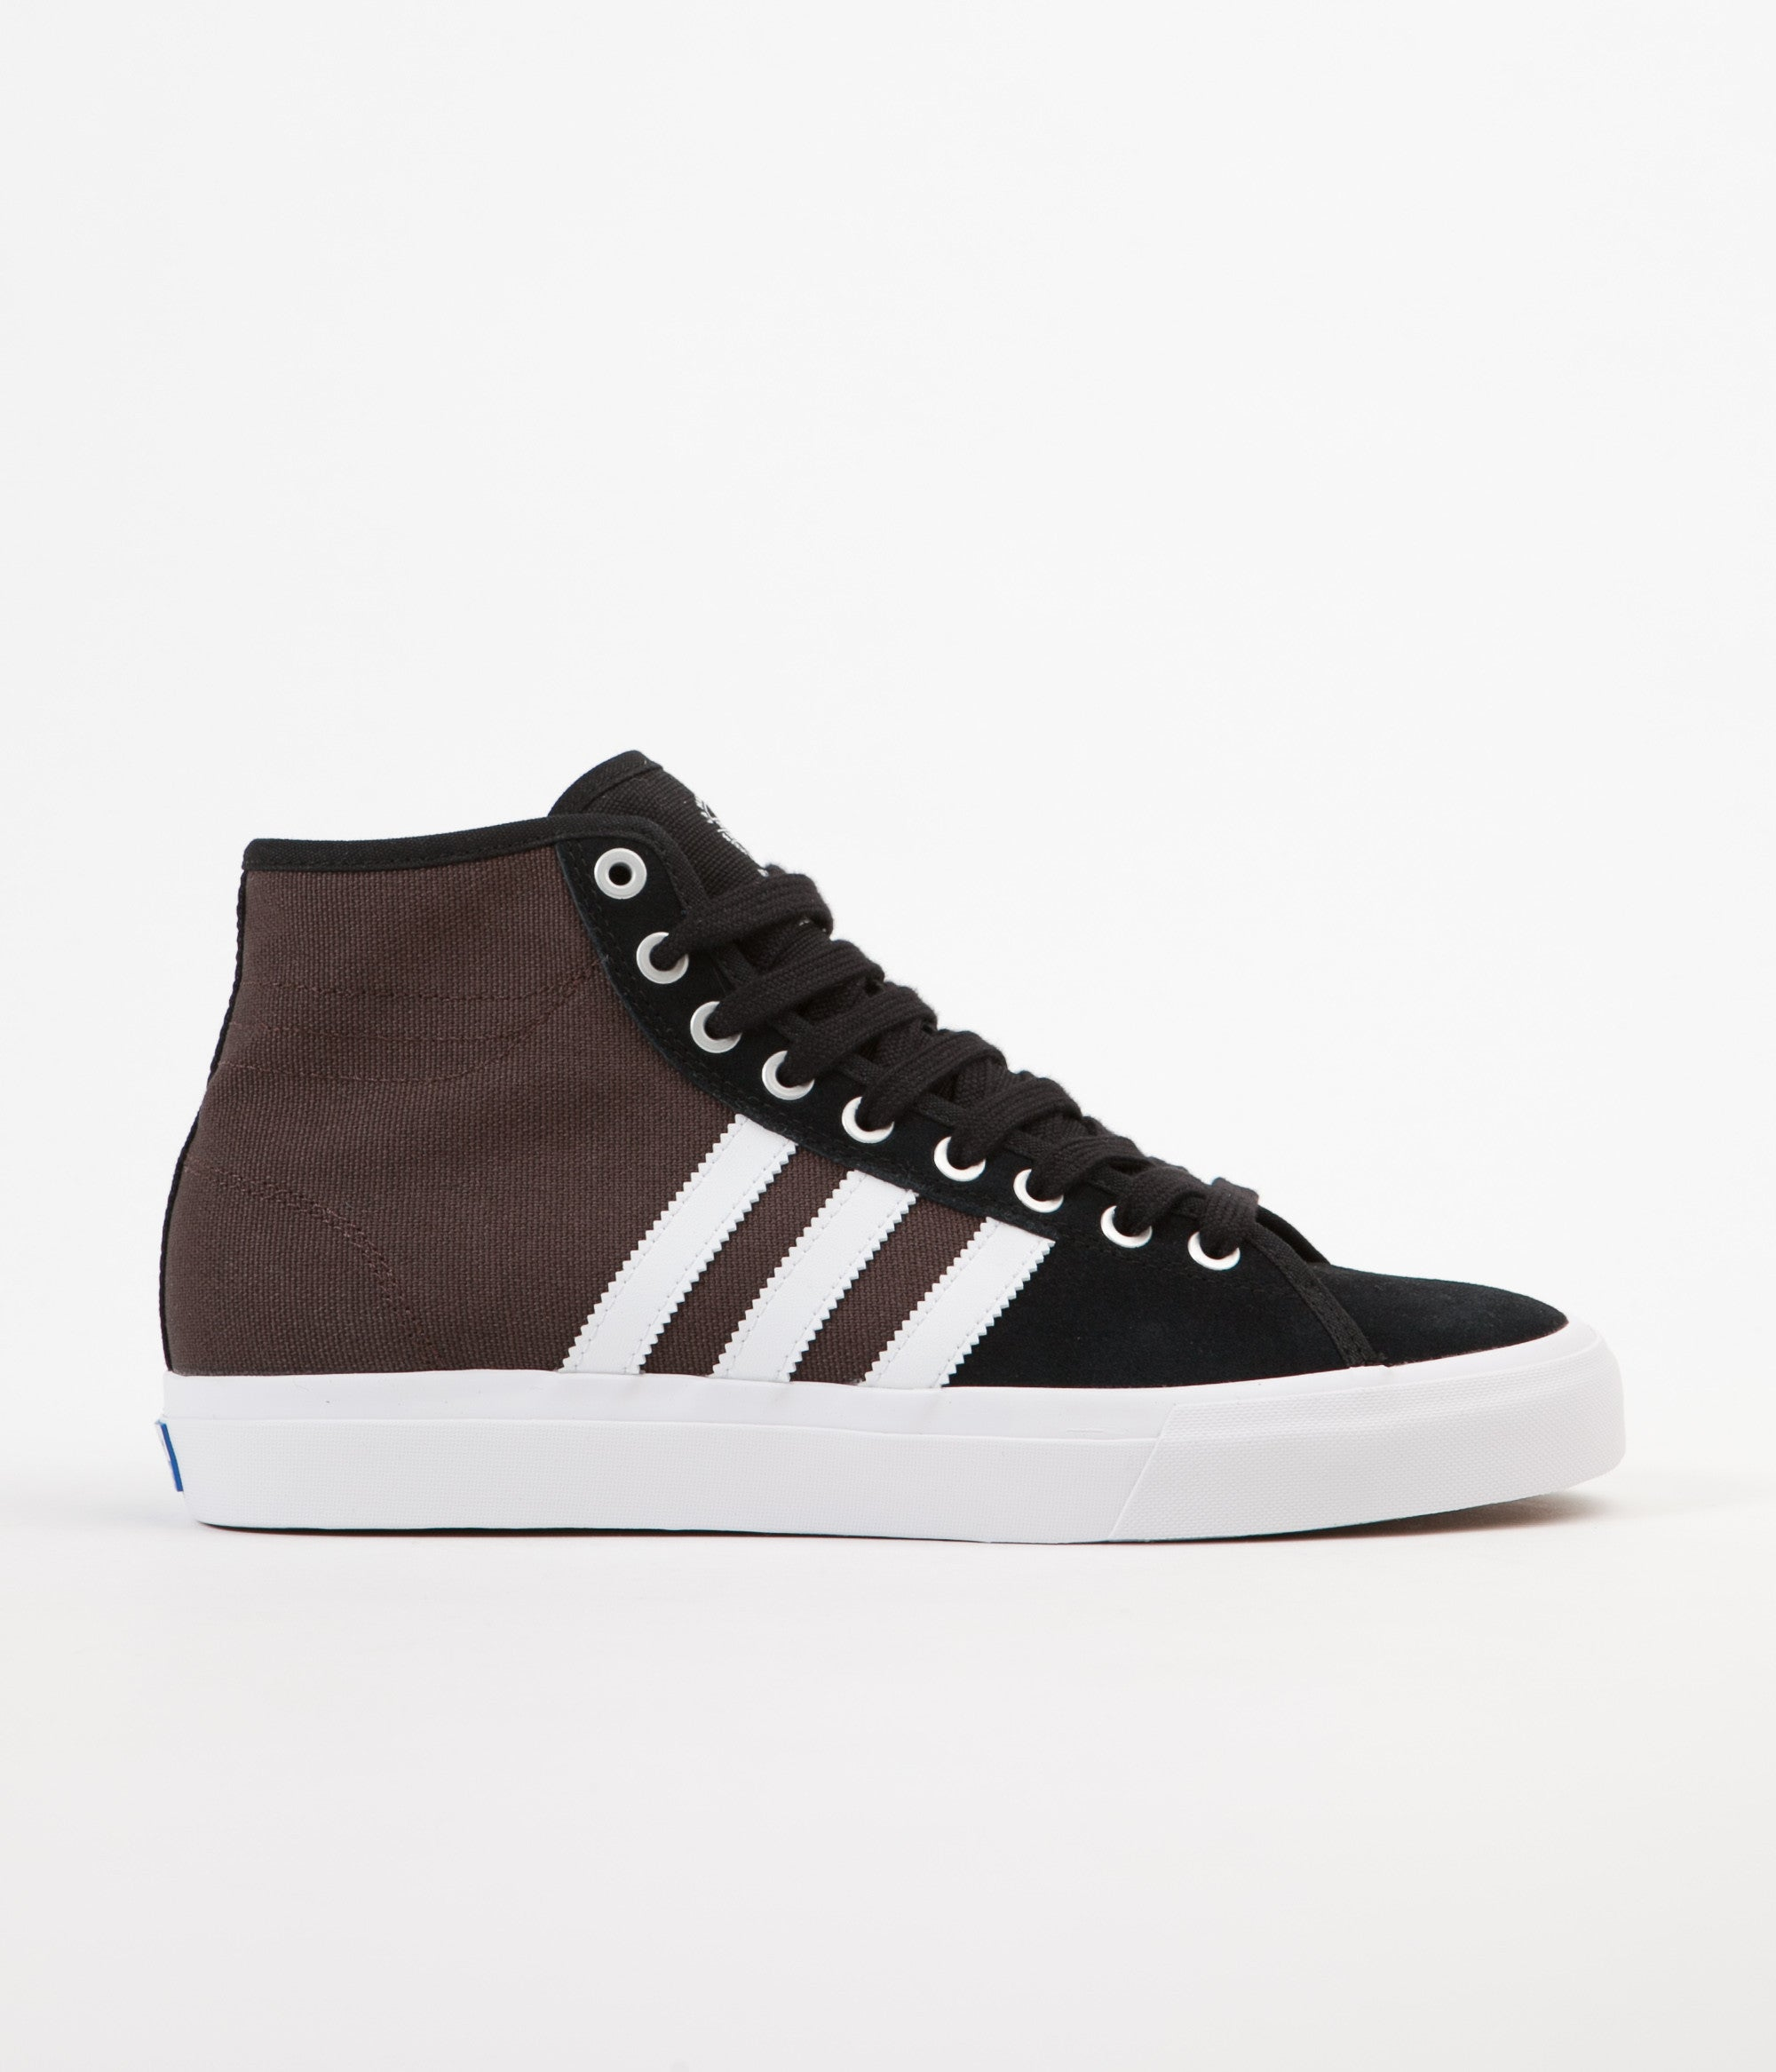 best sneakers cfe18 5110f Adidas Matchcourt High RX Shoes - Core Black   White   Brown